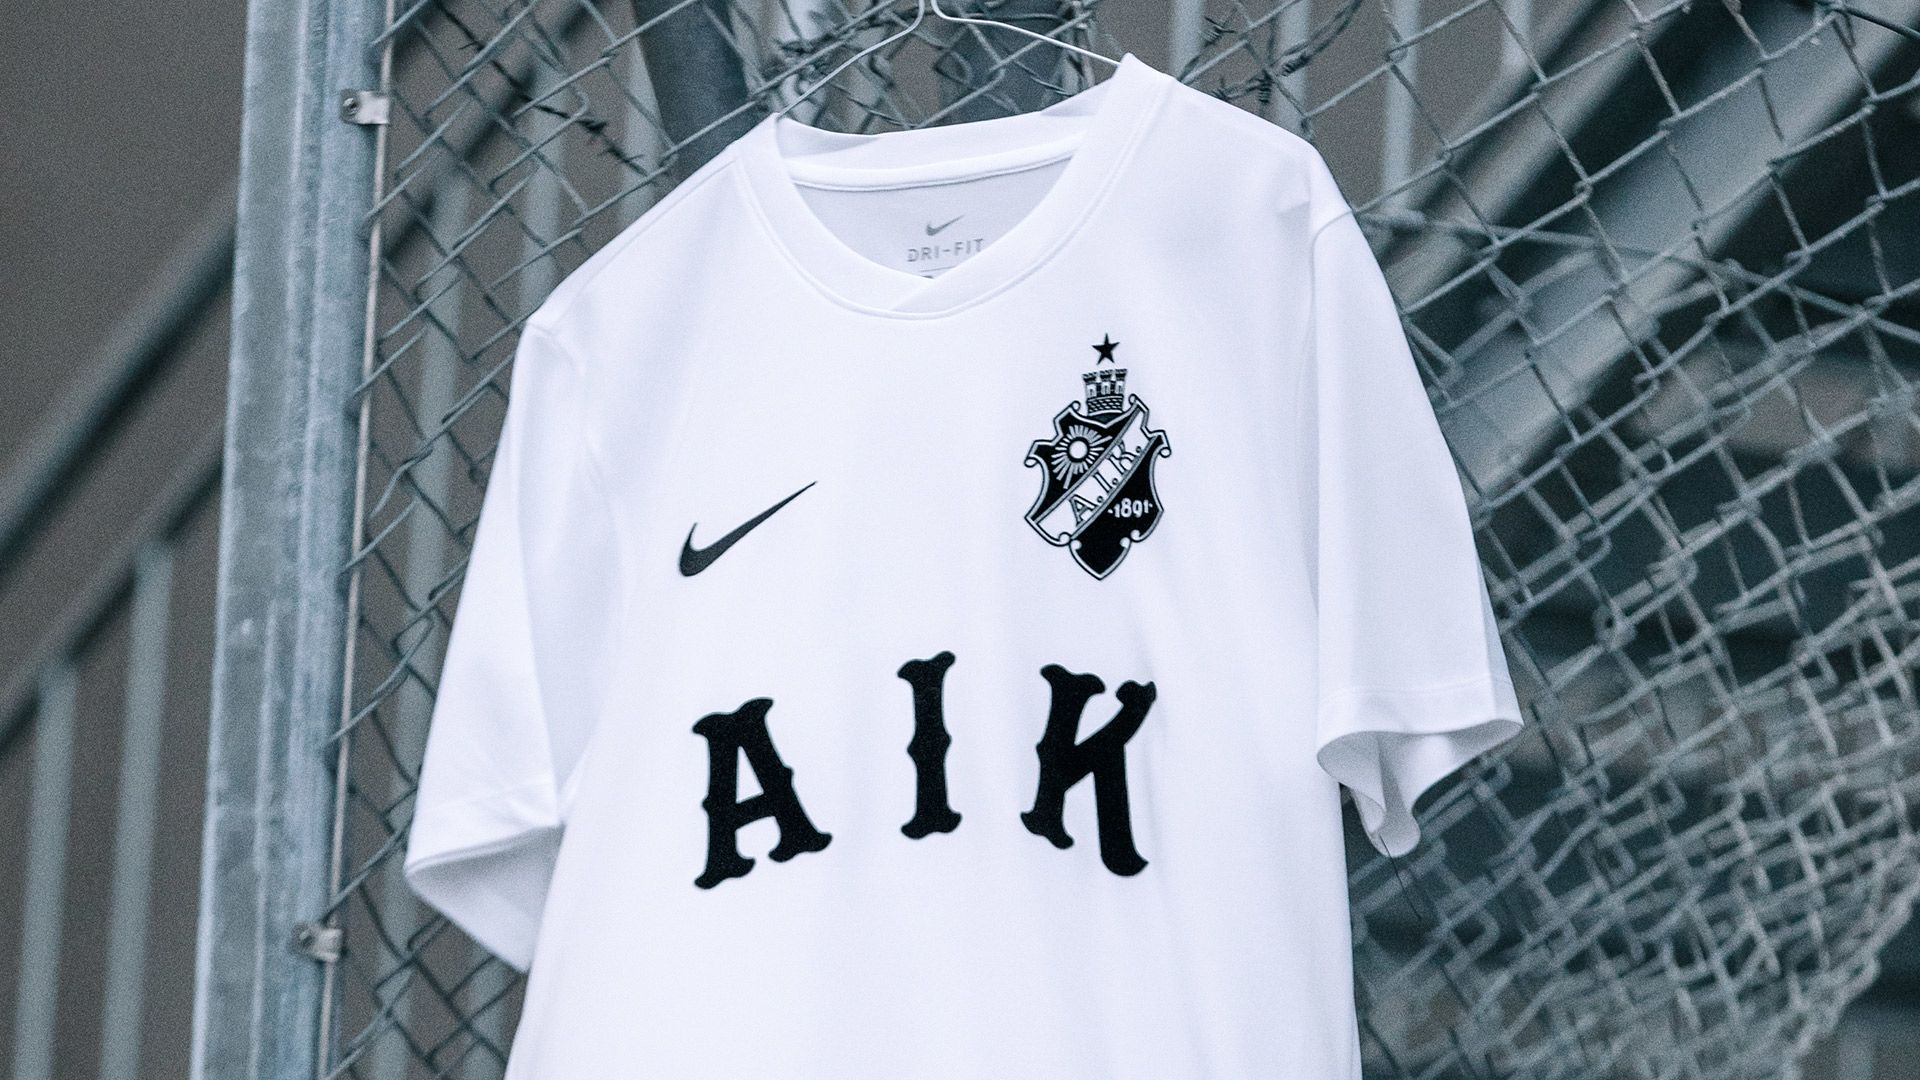 Barone sconnessione semplicemente  Sweden's AIK and Nike Football Drop a Clean Special Edition White Away Kit